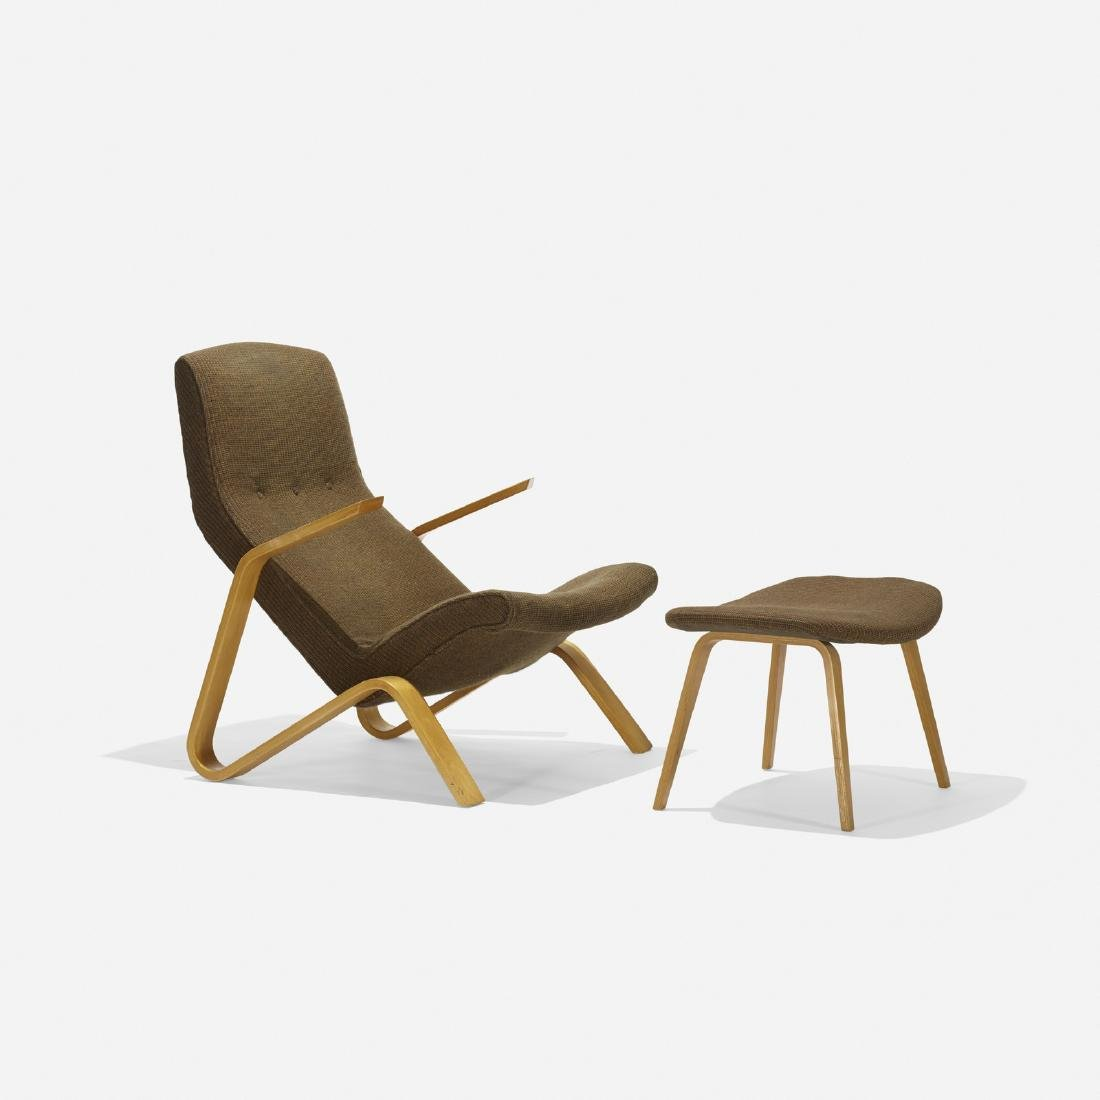 Eero Saarinen, Grasshopper chair and ottoman